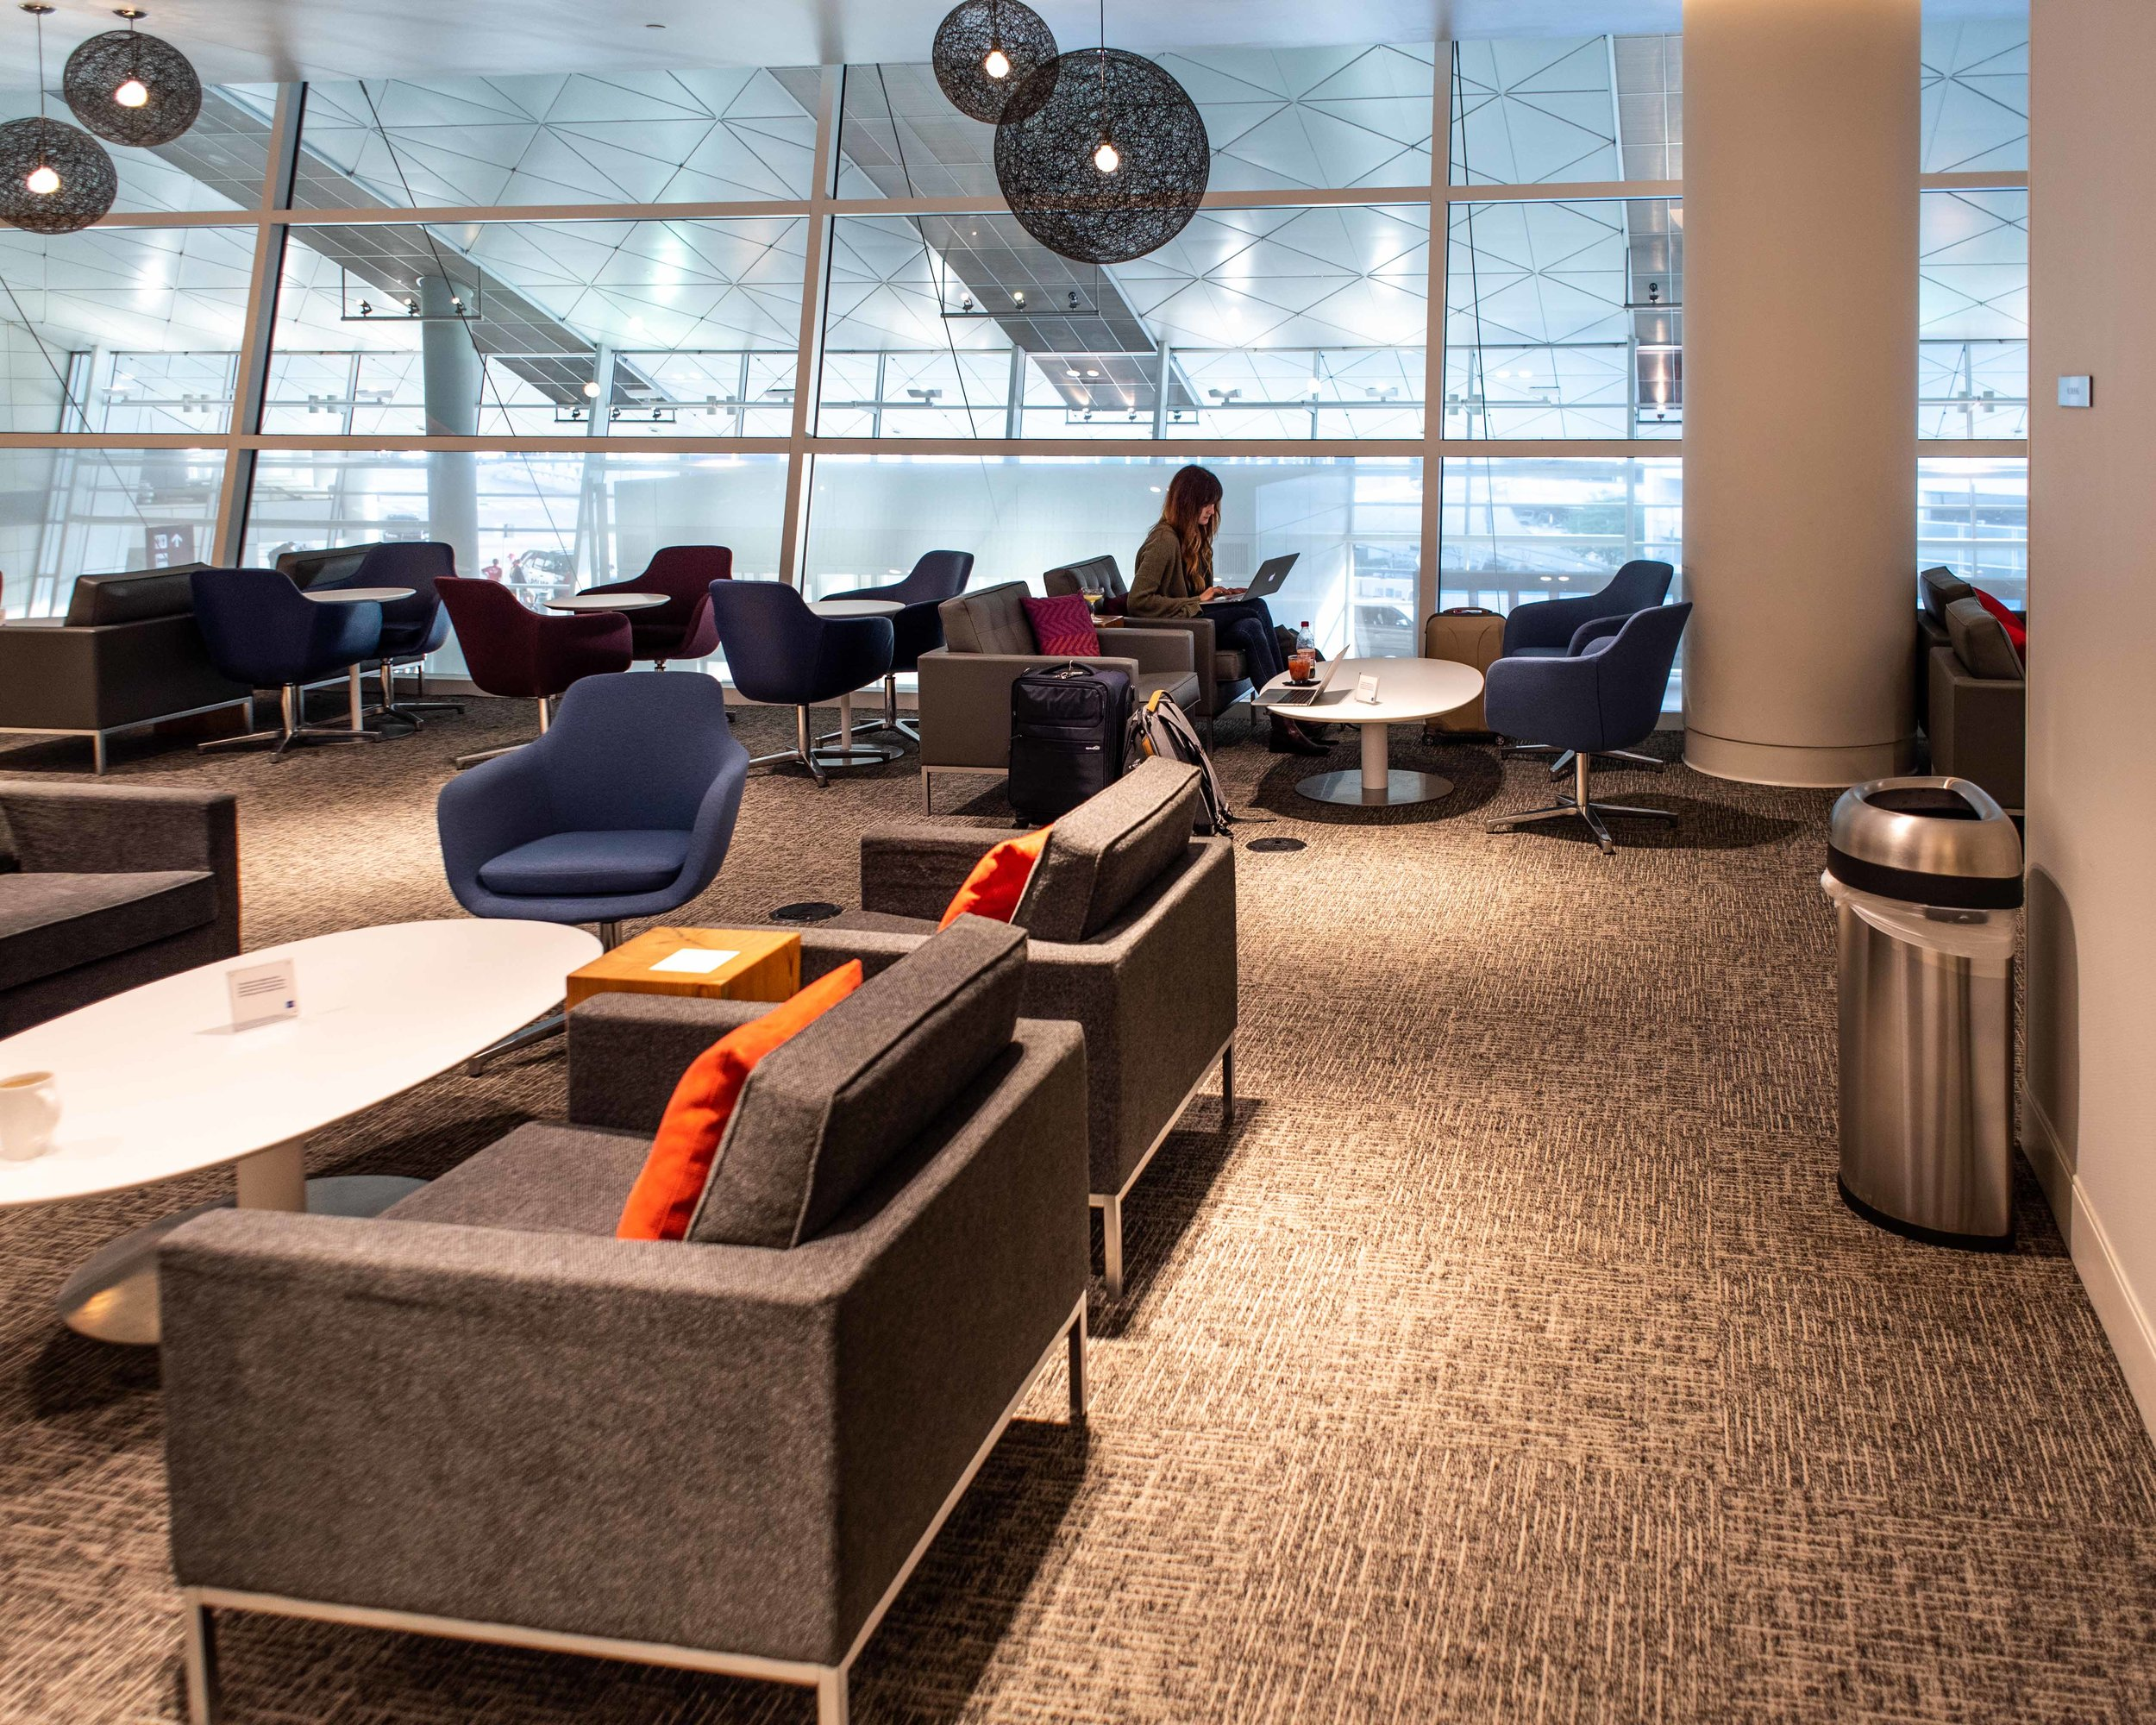 Lounges aren't alway completely empty but they're usually much quieter than the terminal.